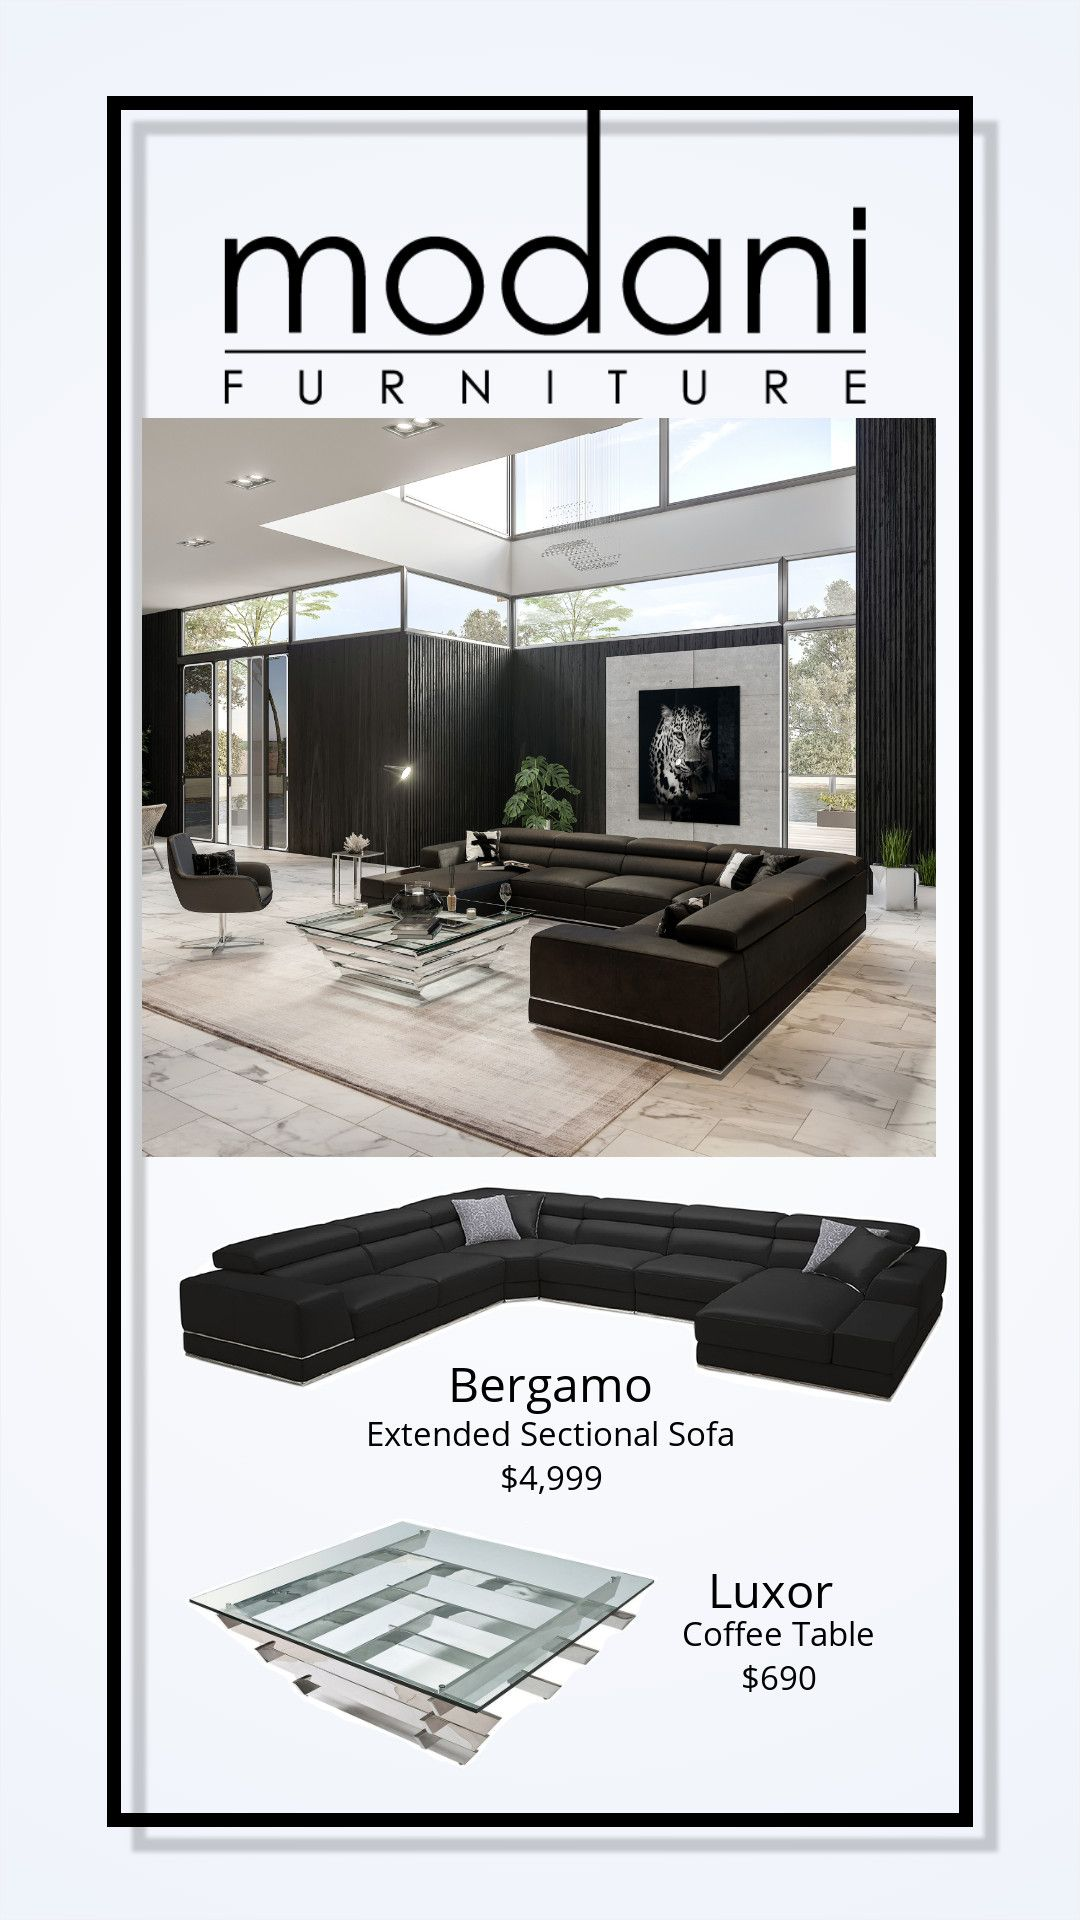 Stupendous Bergamo Extended Sectional Sofa Black Shop The Look In Pabps2019 Chair Design Images Pabps2019Com